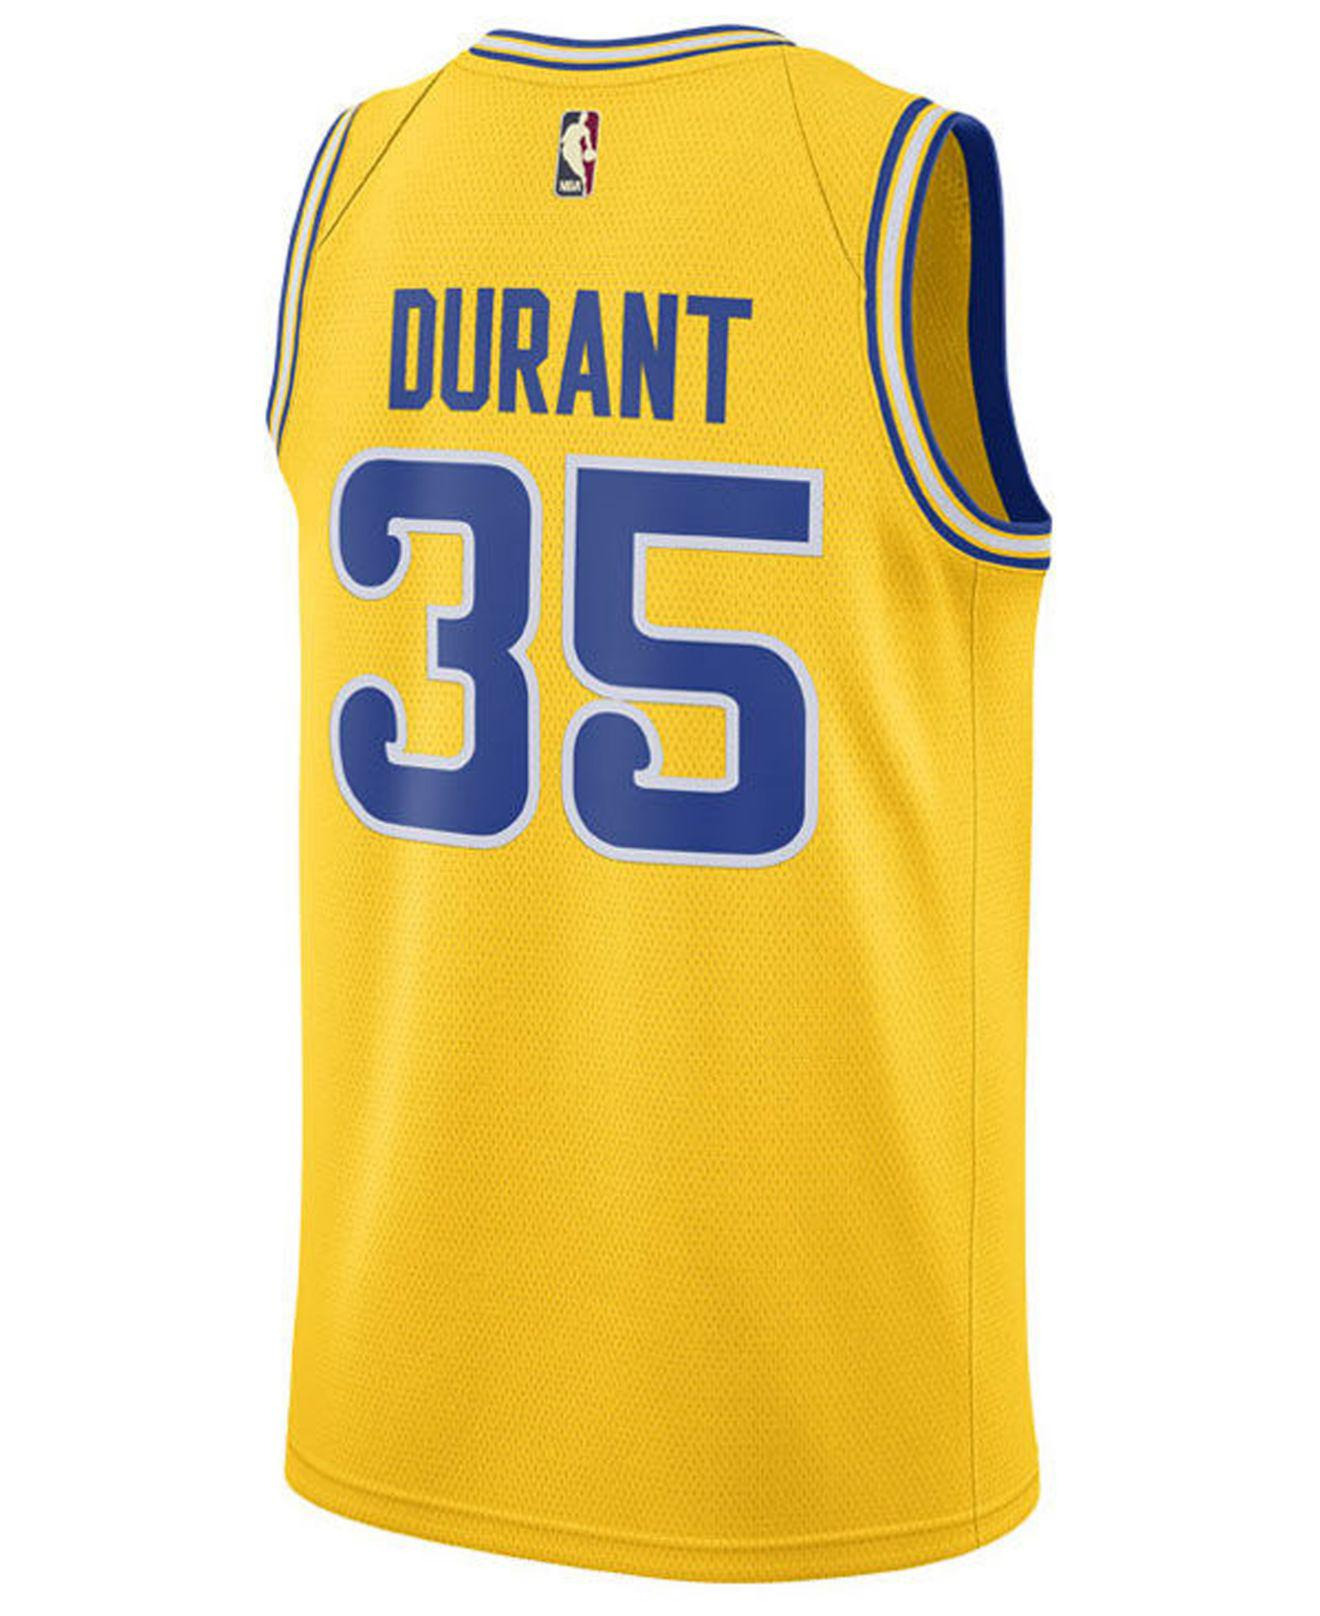 Lyst - Nike Kevin Durant Golden State Warriors Hardwood Classic Swingman  Jersey in Yellow for Men 1d4cd9d6f